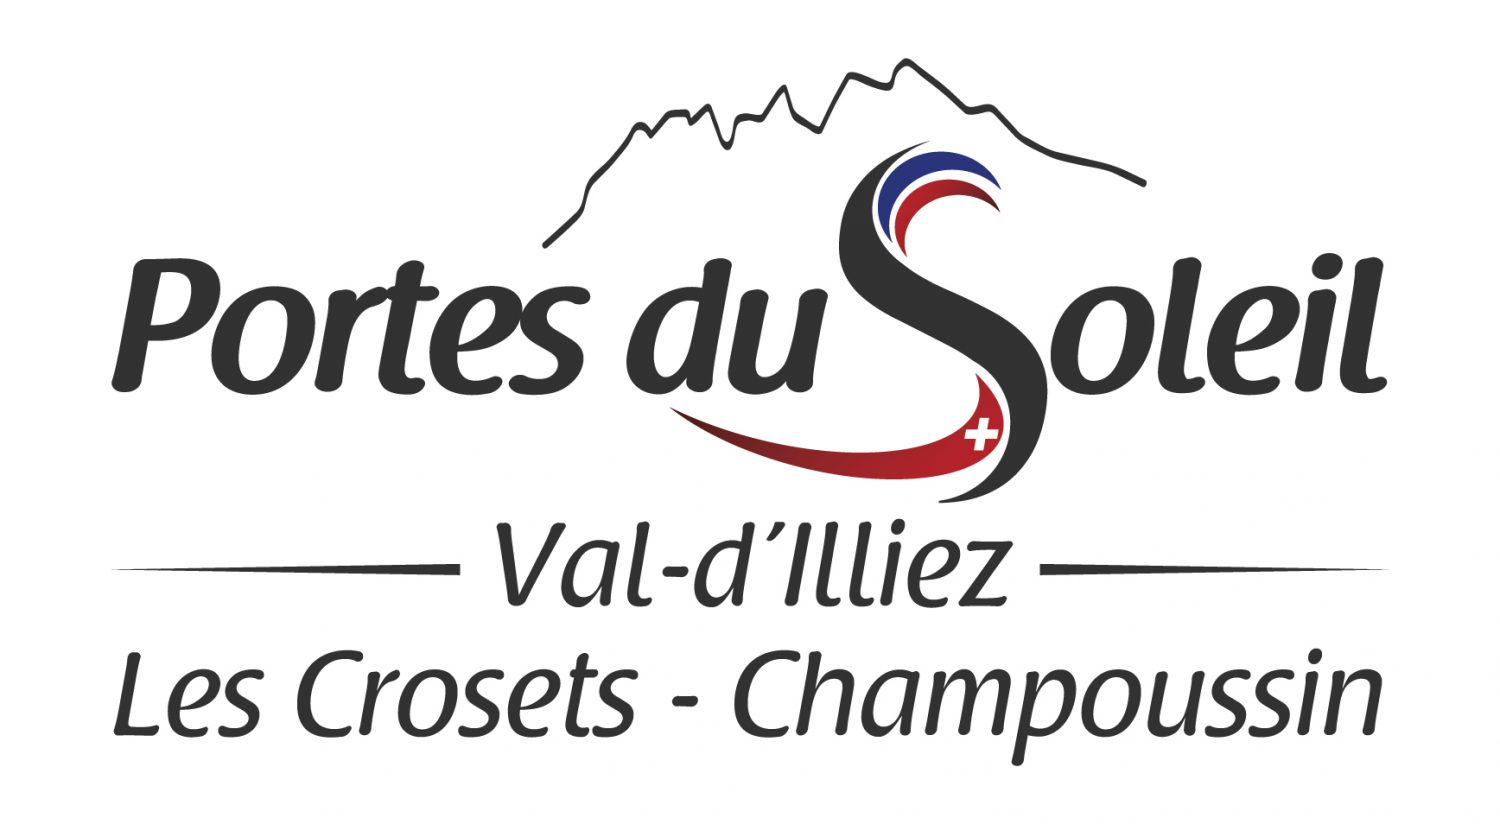 Airport Transfers to Les Crosets from Geneva and Sion